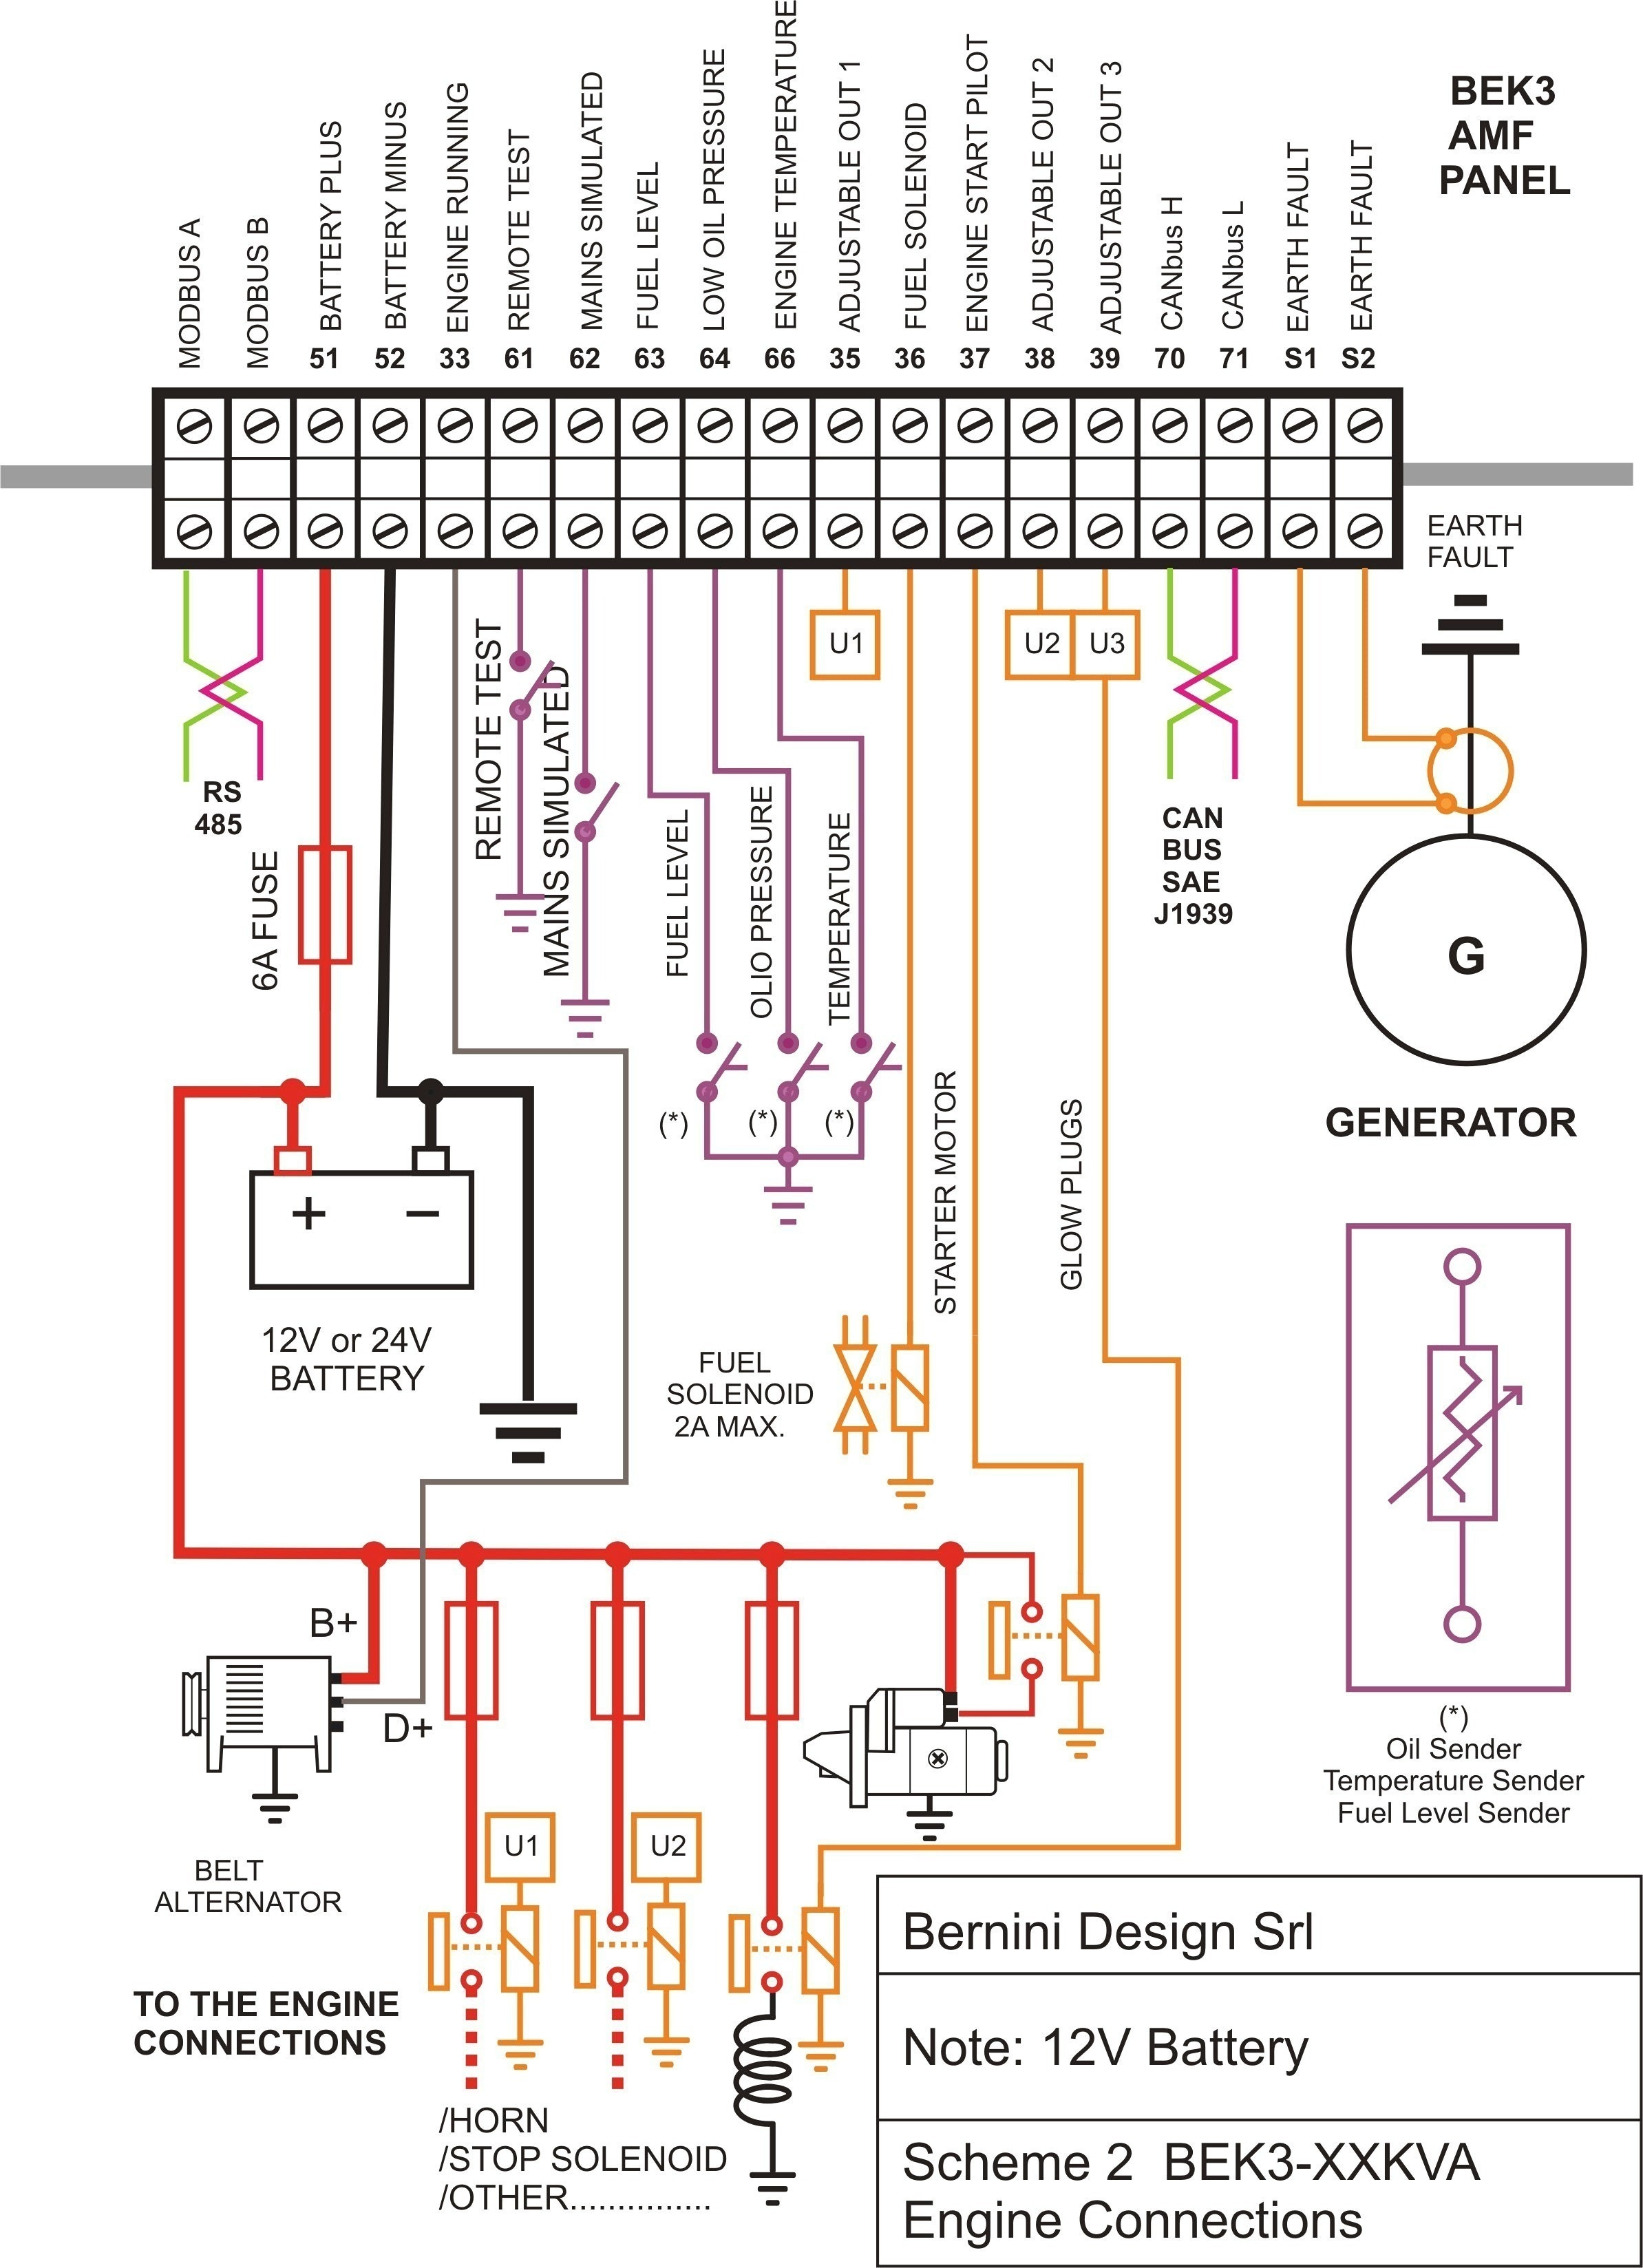 furnace wiring diagram Collection-Wiring Diagram Rv Park New Furnace Wiring Diagram Fresh Best Wiring Diagram Od Rv Park – 8-q